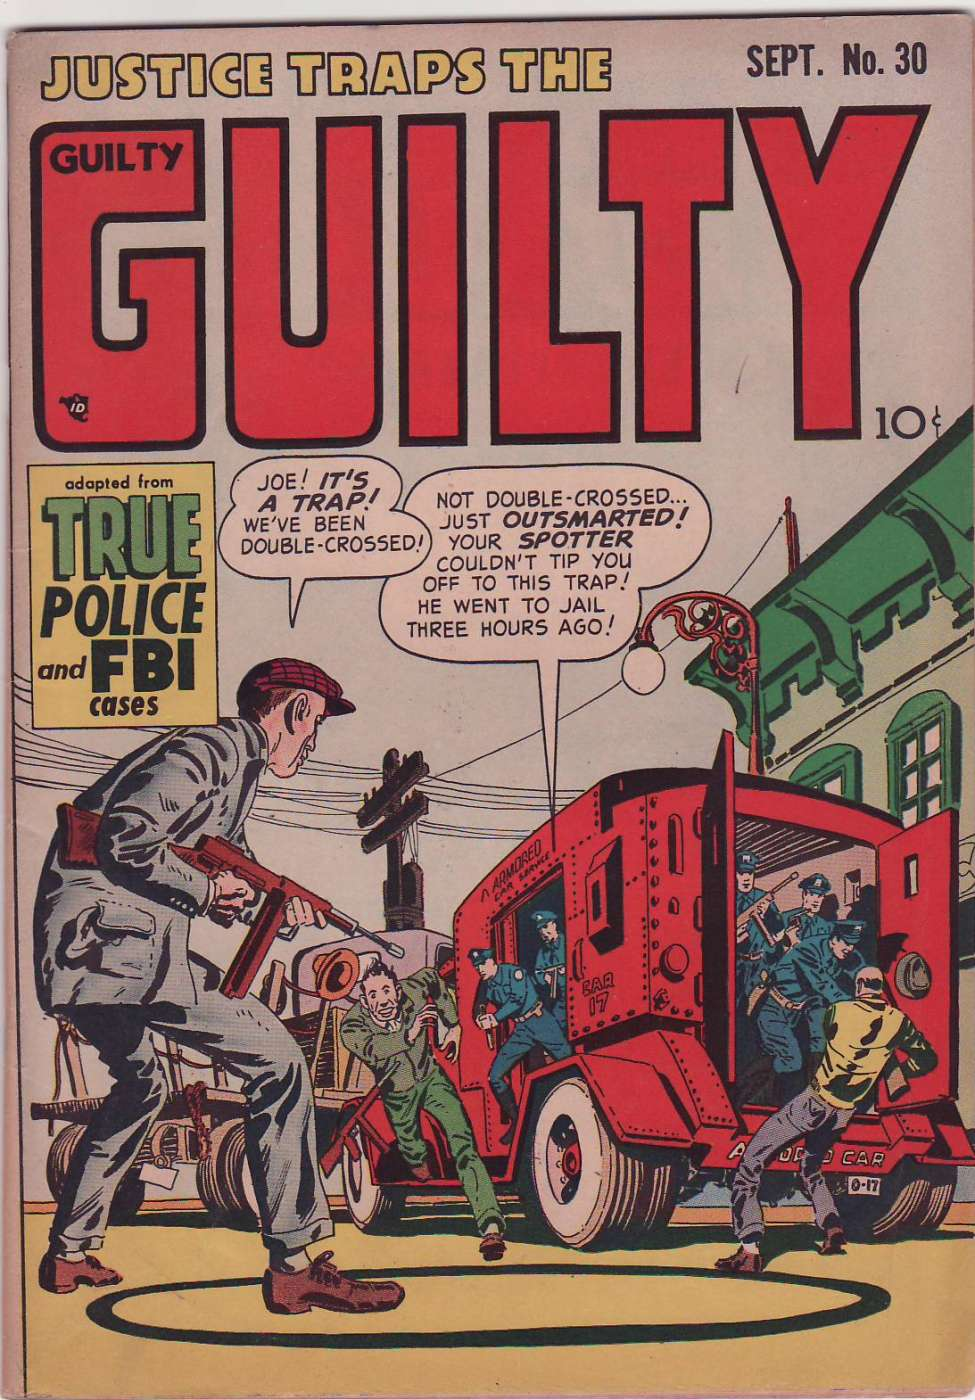 Comic Book Cover For Justice Traps the Guilty v4 12 (30)